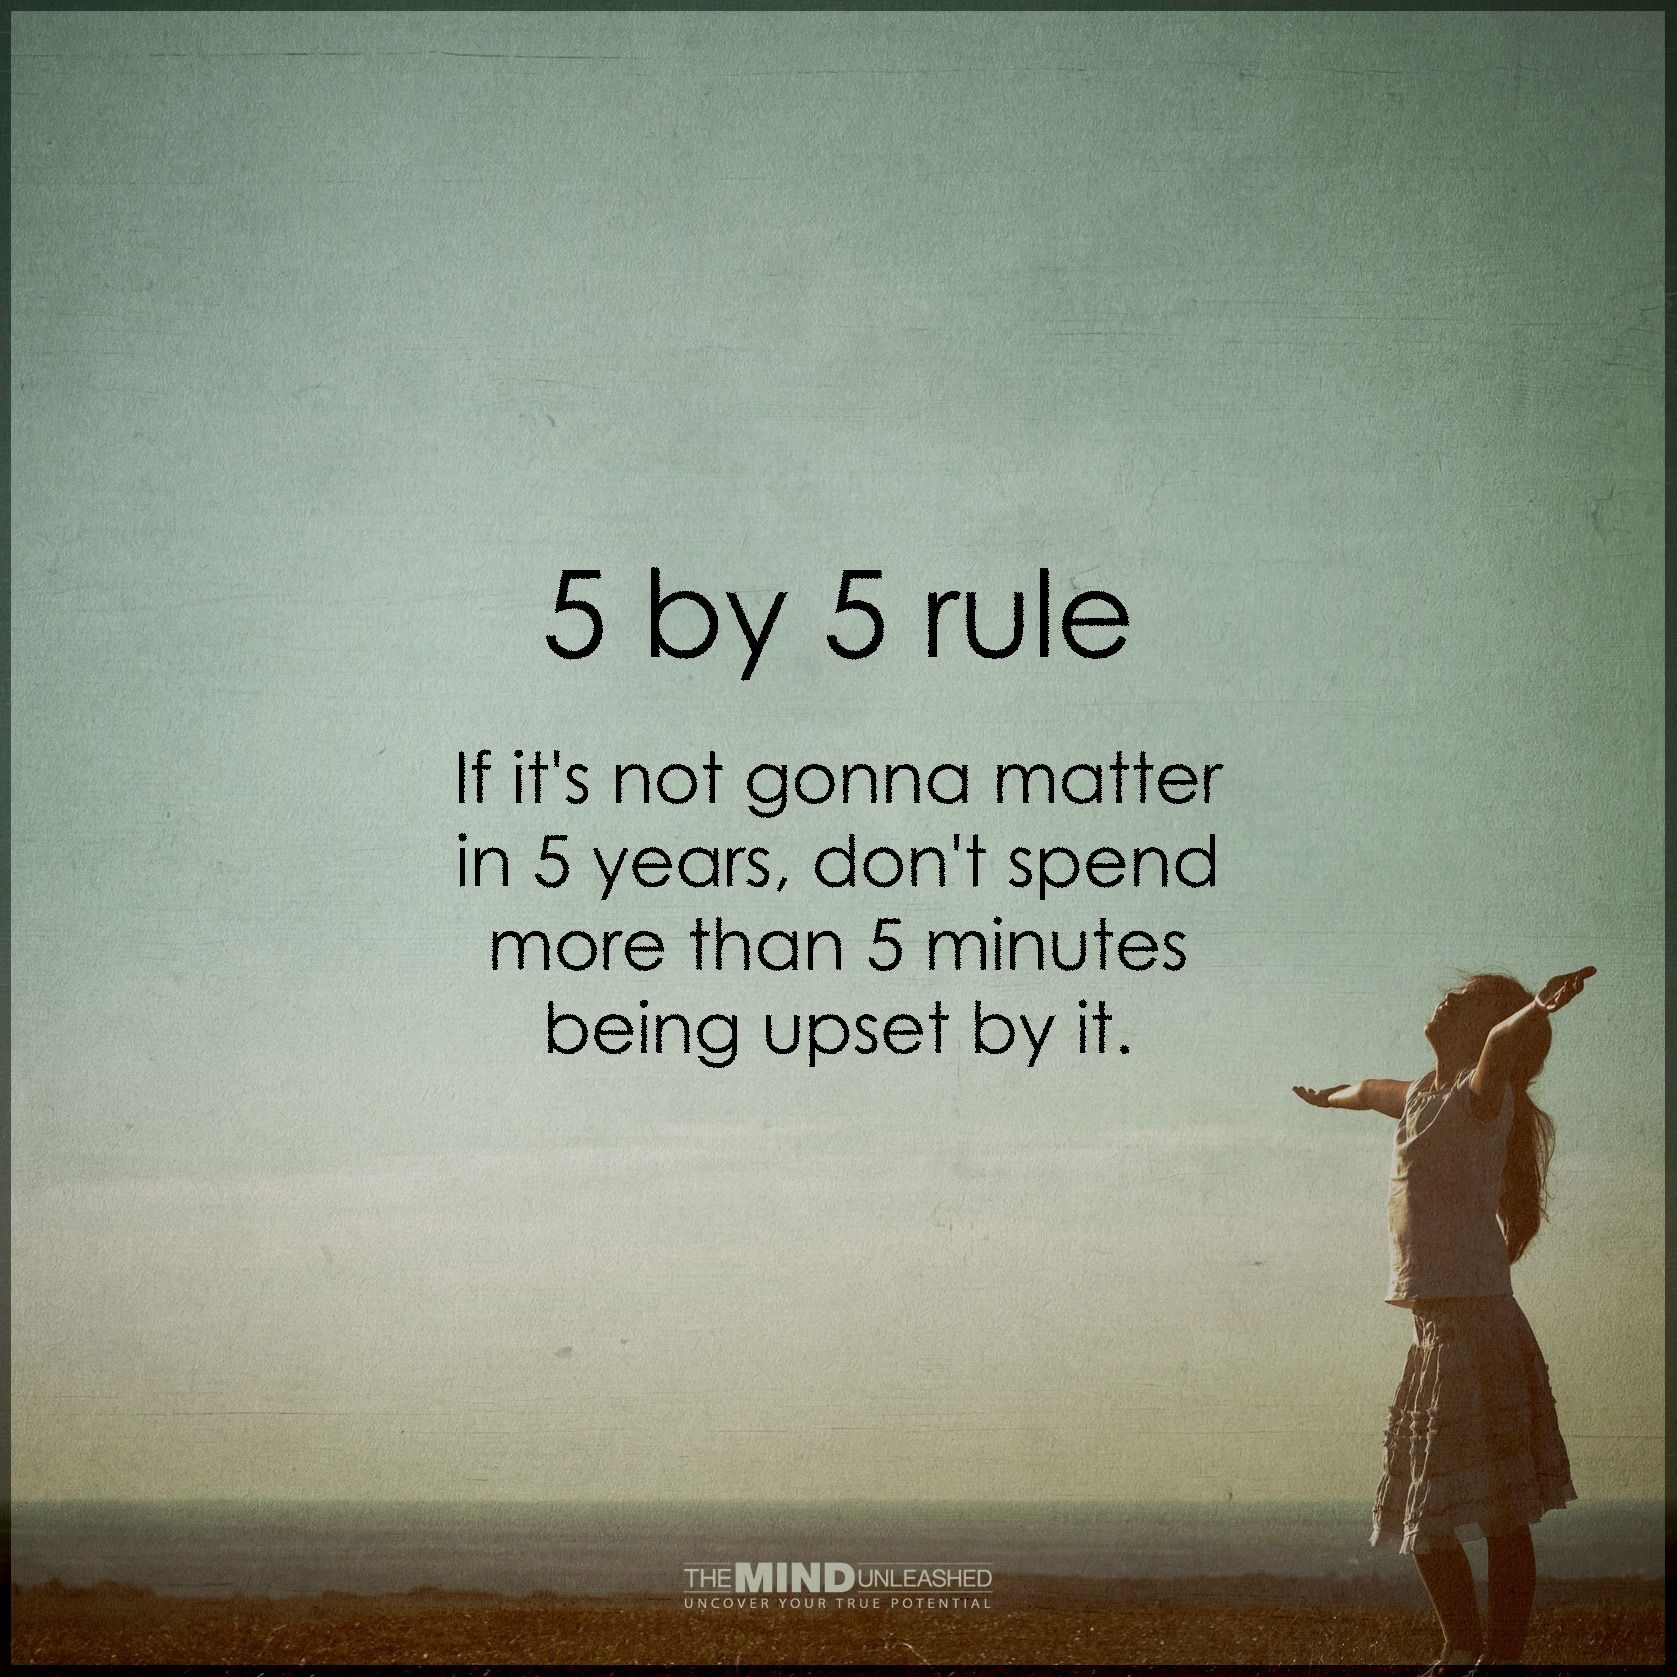 Try the 5 by 5 rule and live happier